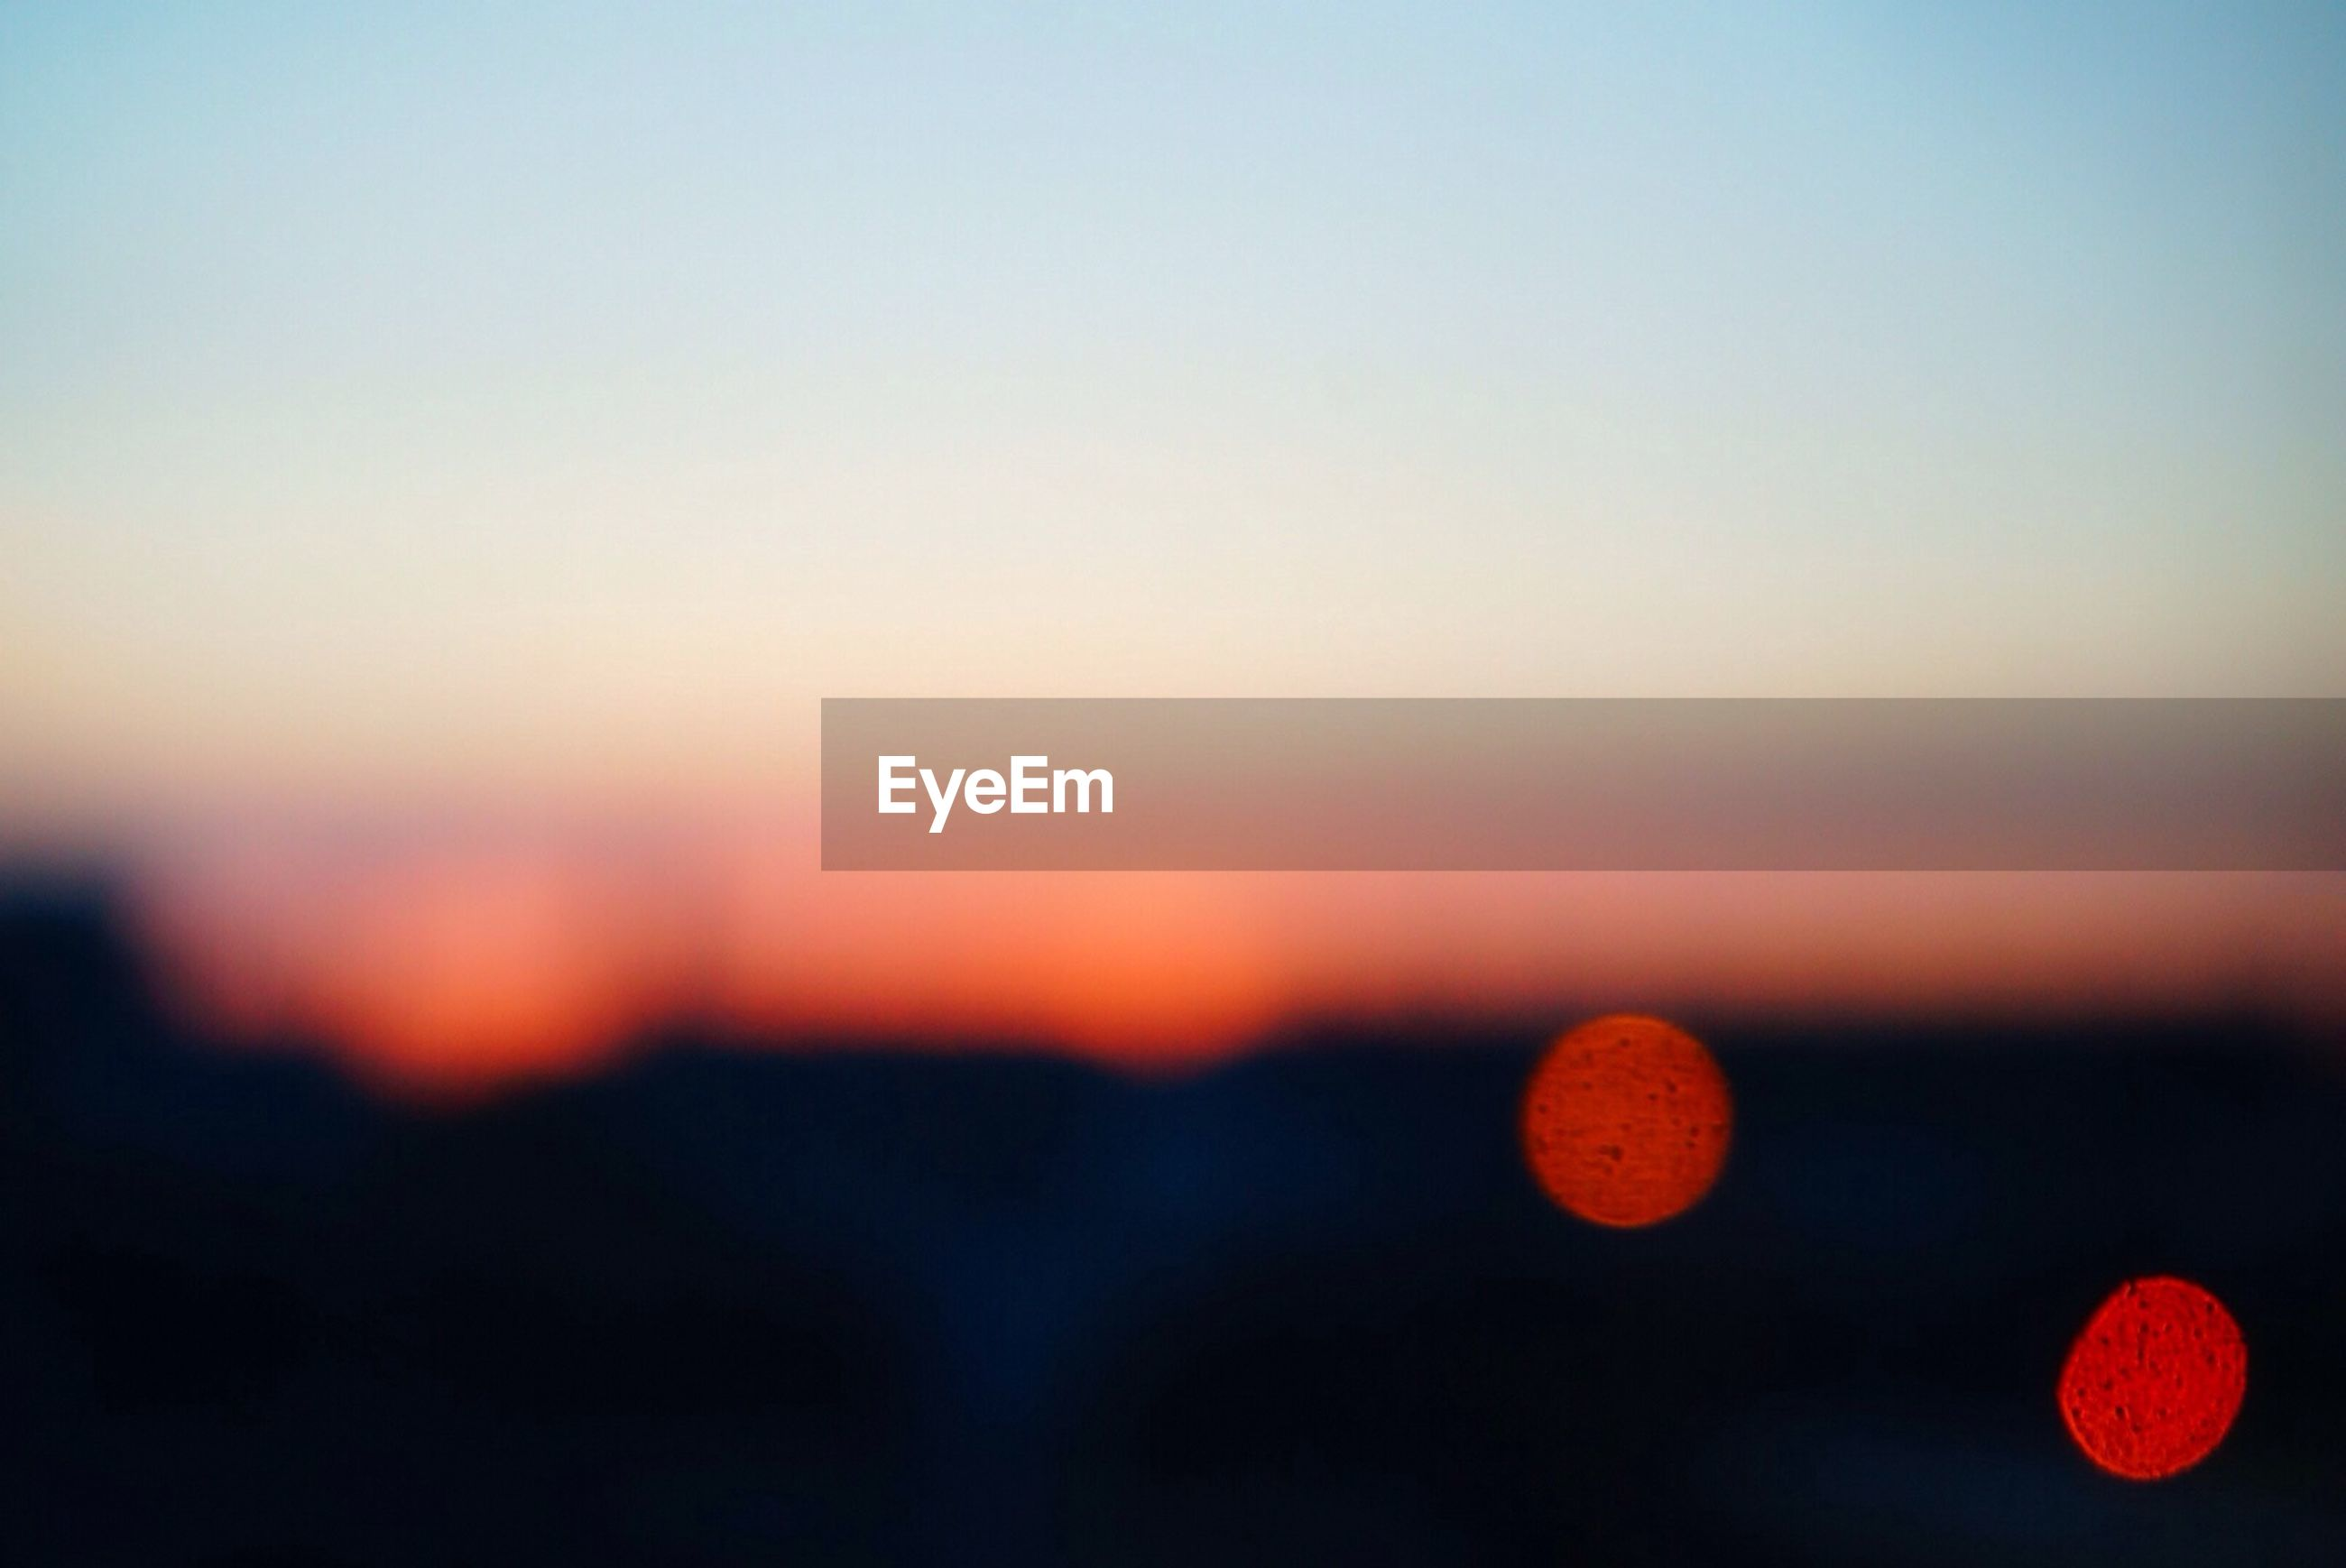 sunset, orange color, scenics, tranquil scene, beauty in nature, tranquility, copy space, clear sky, nature, red, idyllic, sky, focus on foreground, sun, landscape, dusk, no people, outdoors, silhouette, close-up